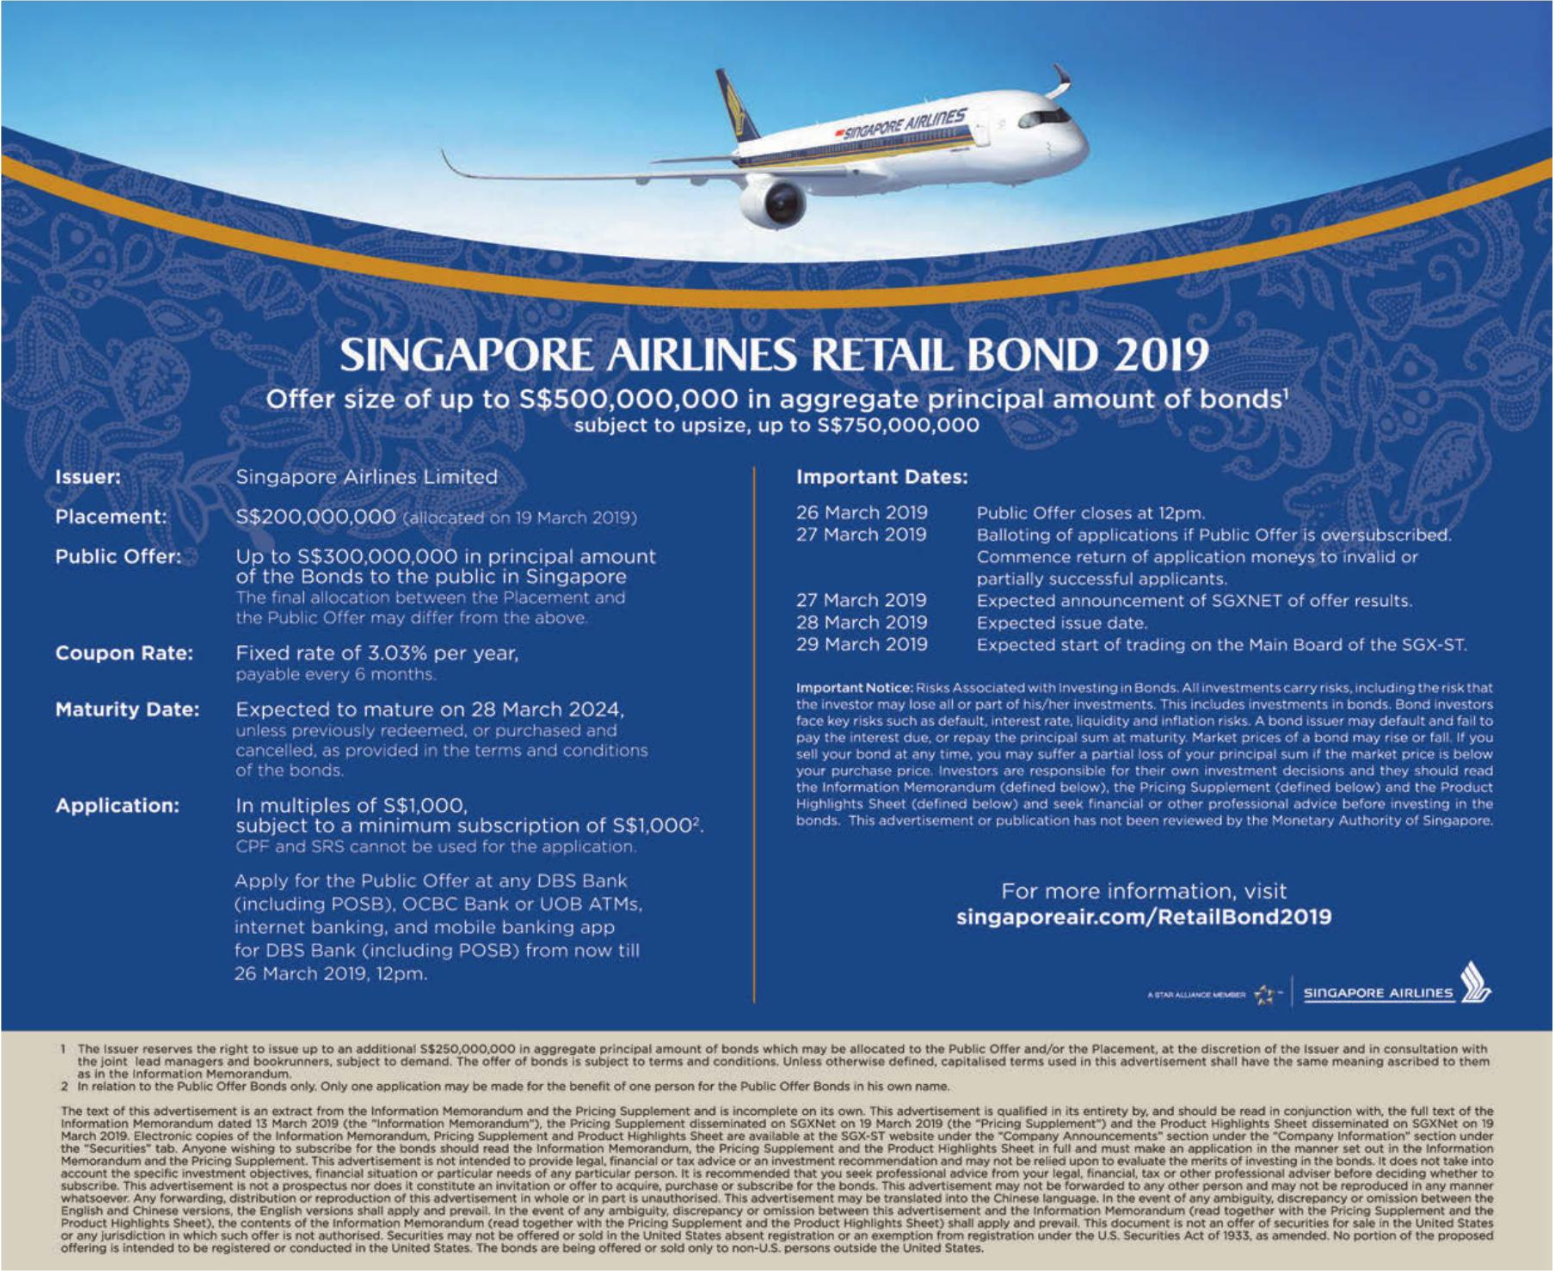 Receive a fixed interest of 3.03% per annum with Singapore Airlines's Retail Bond 2019